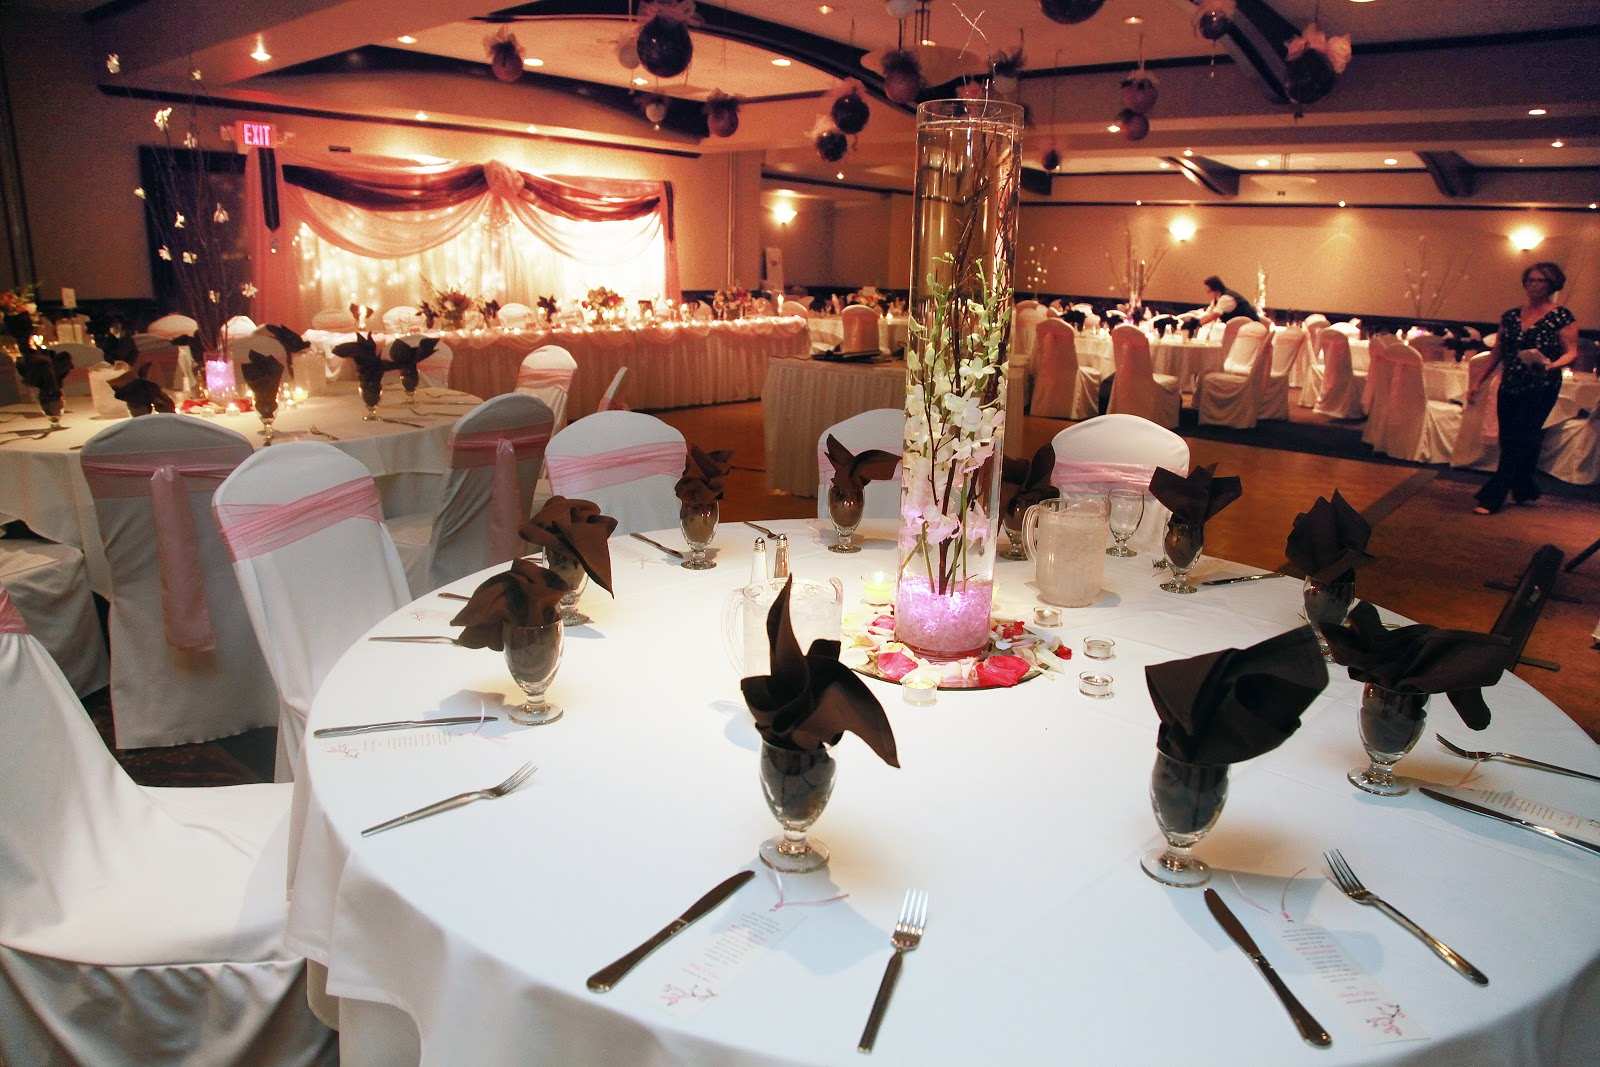 Review Of The Regency Lodge For A Wedding Reception In Omaha